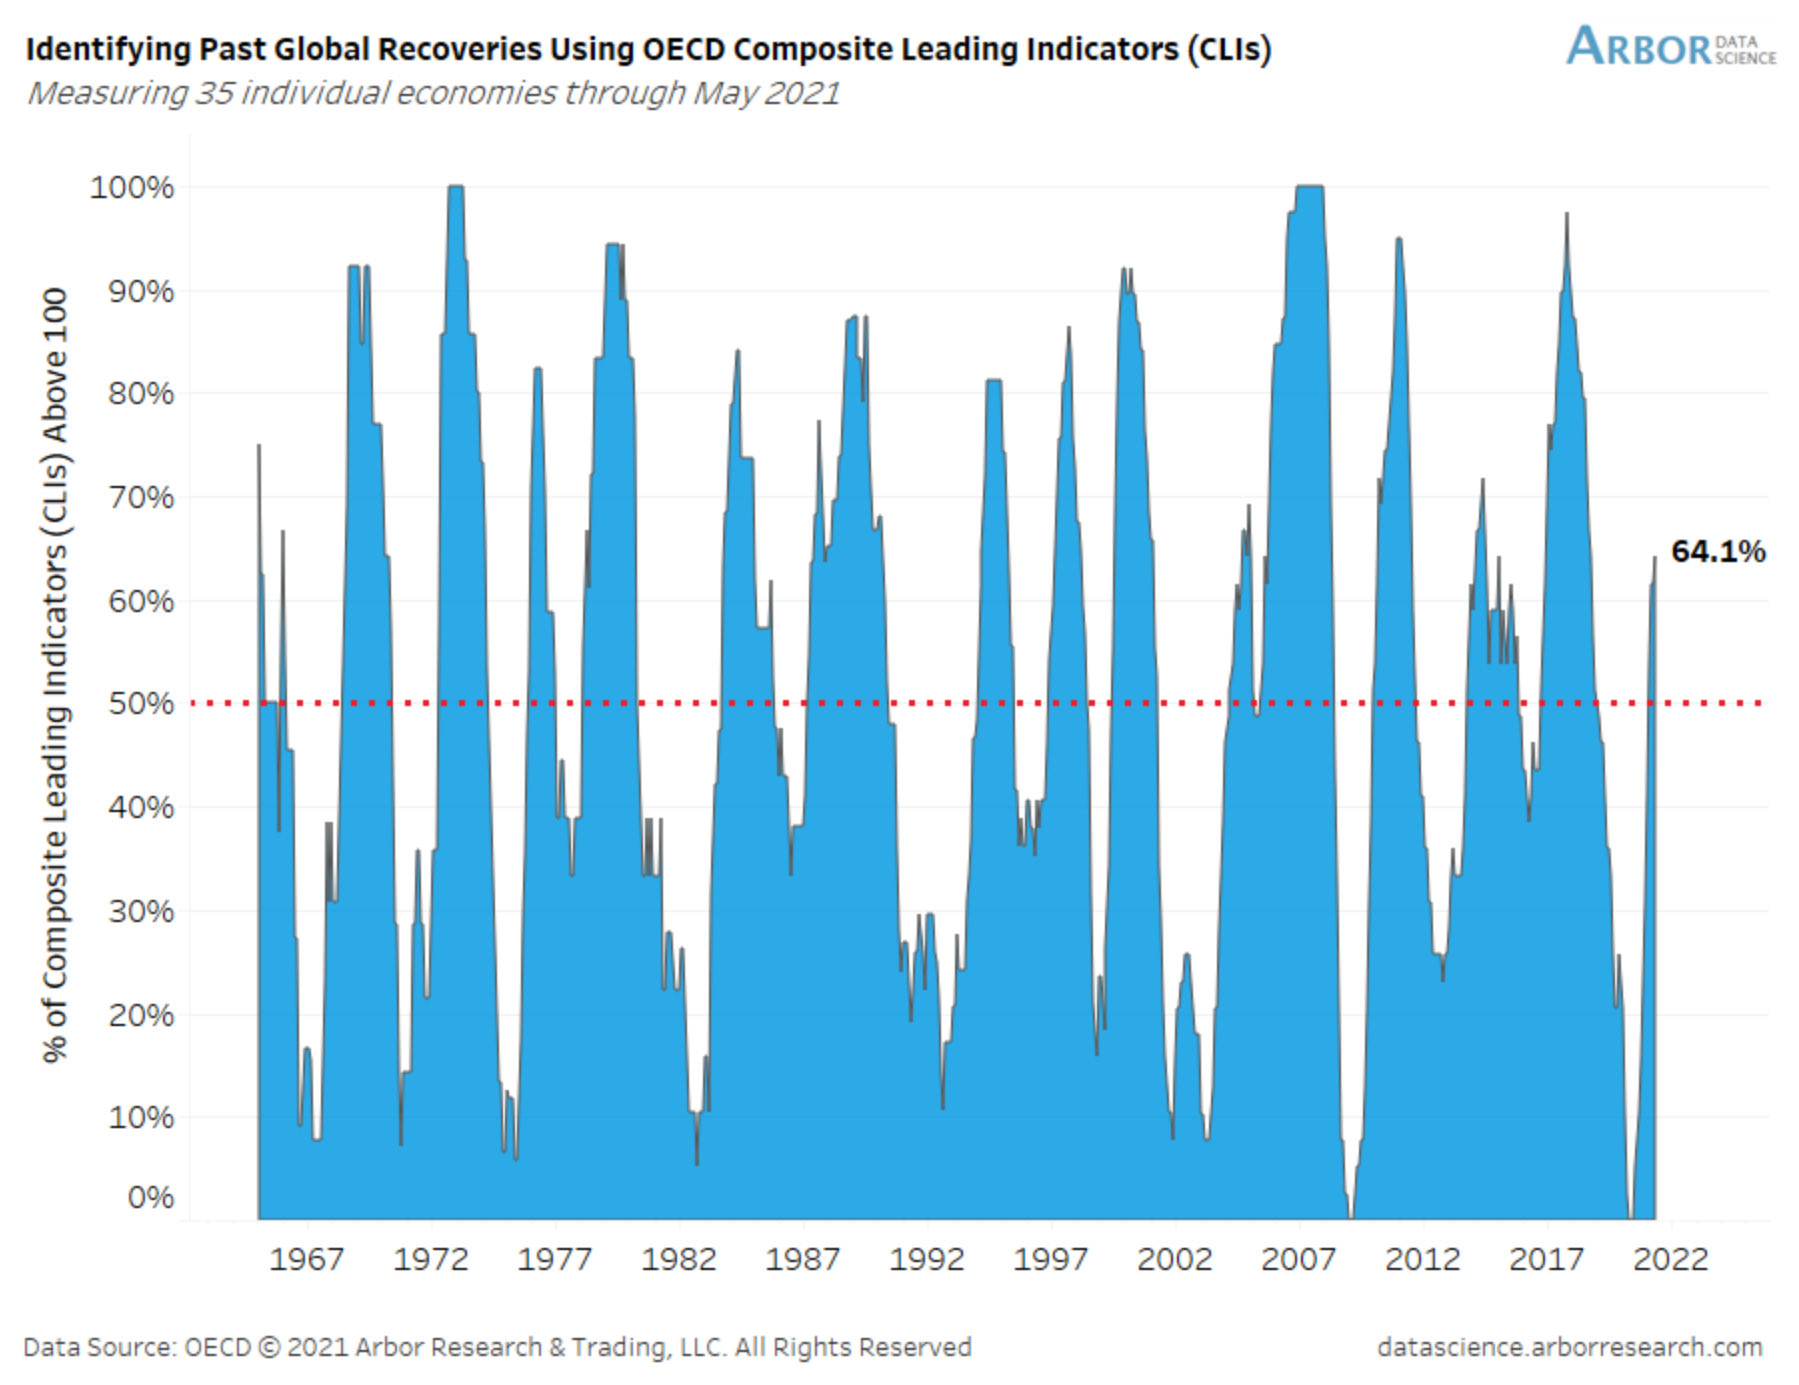 The global economic recovery looks promising